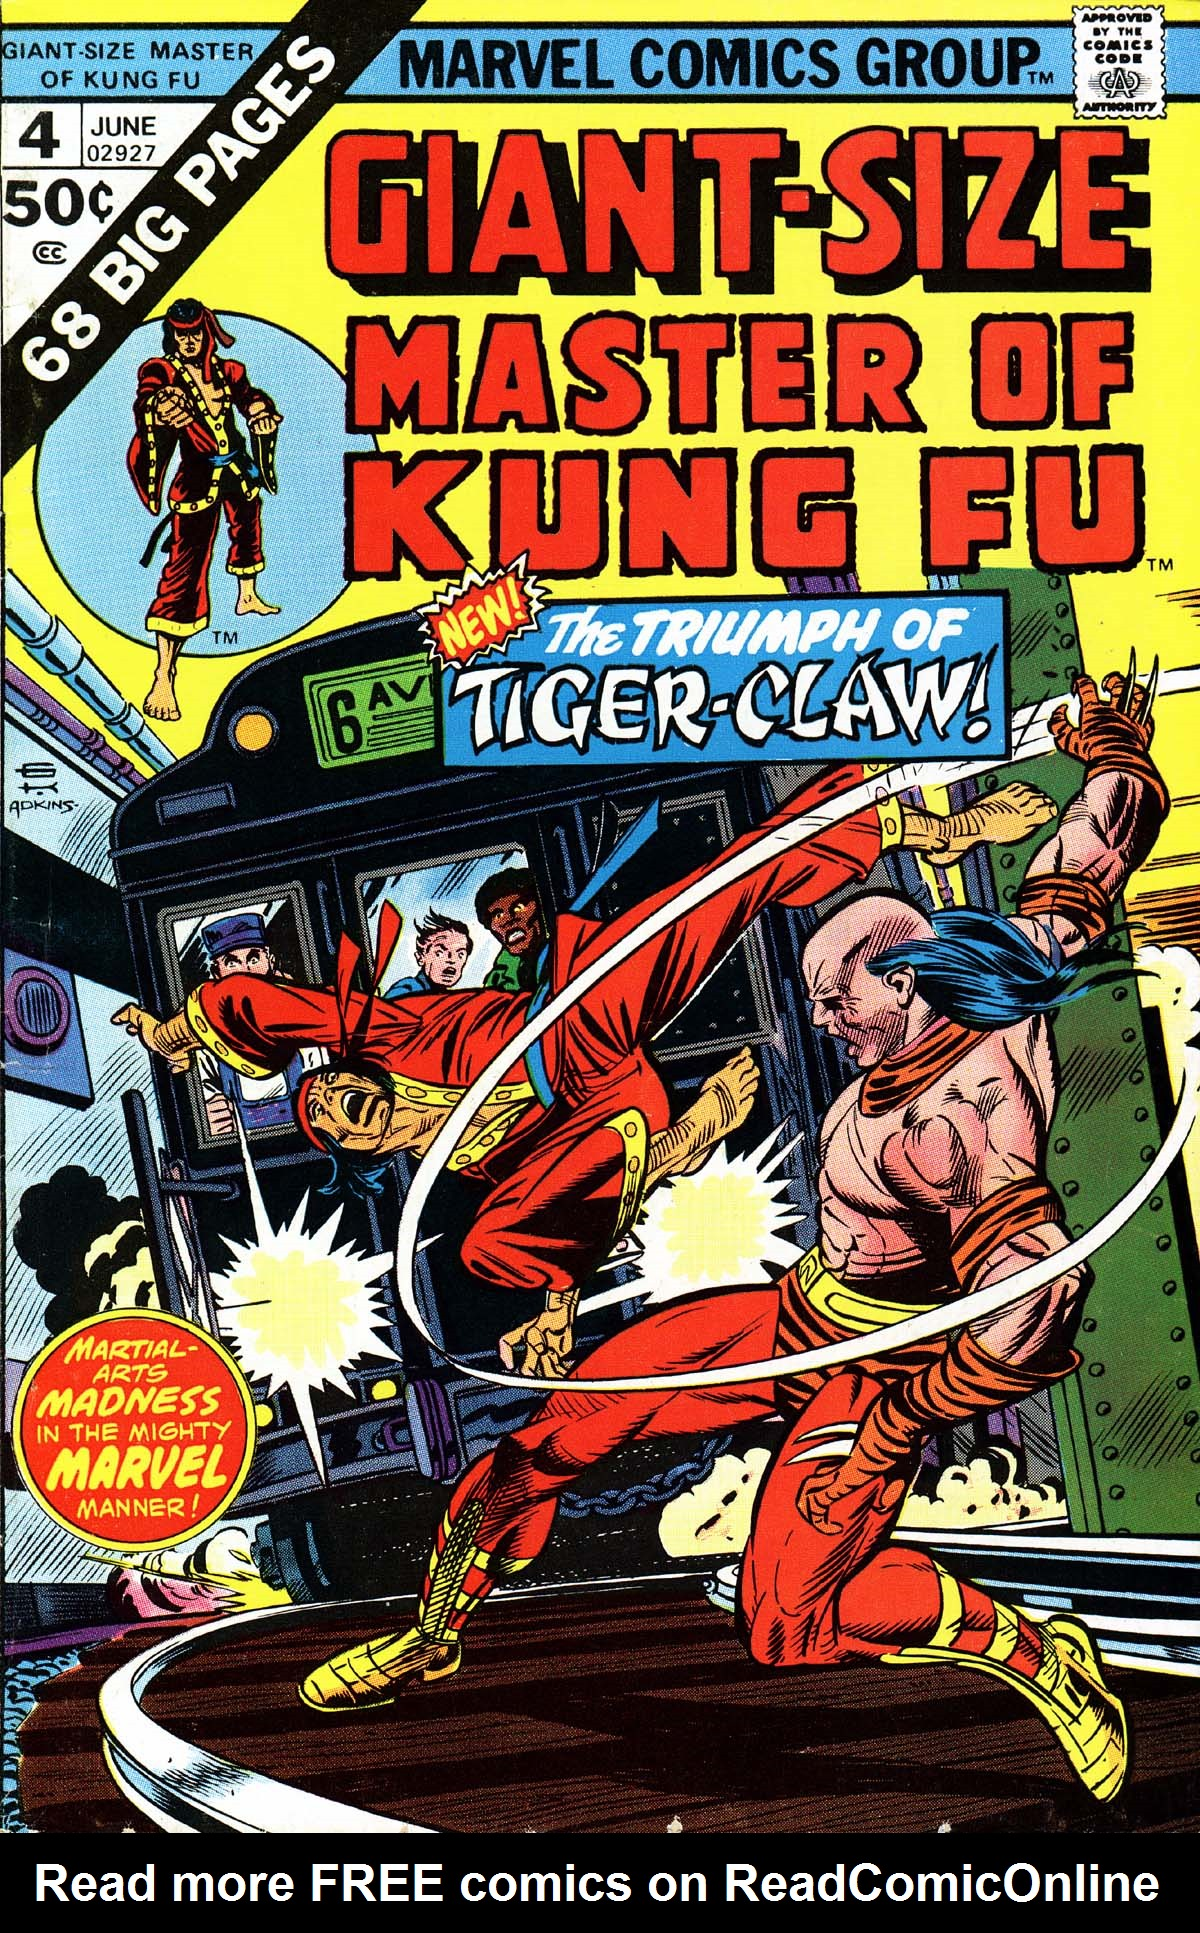 Read online Giant-Size Master of Kung Fu comic -  Issue #4 - 1